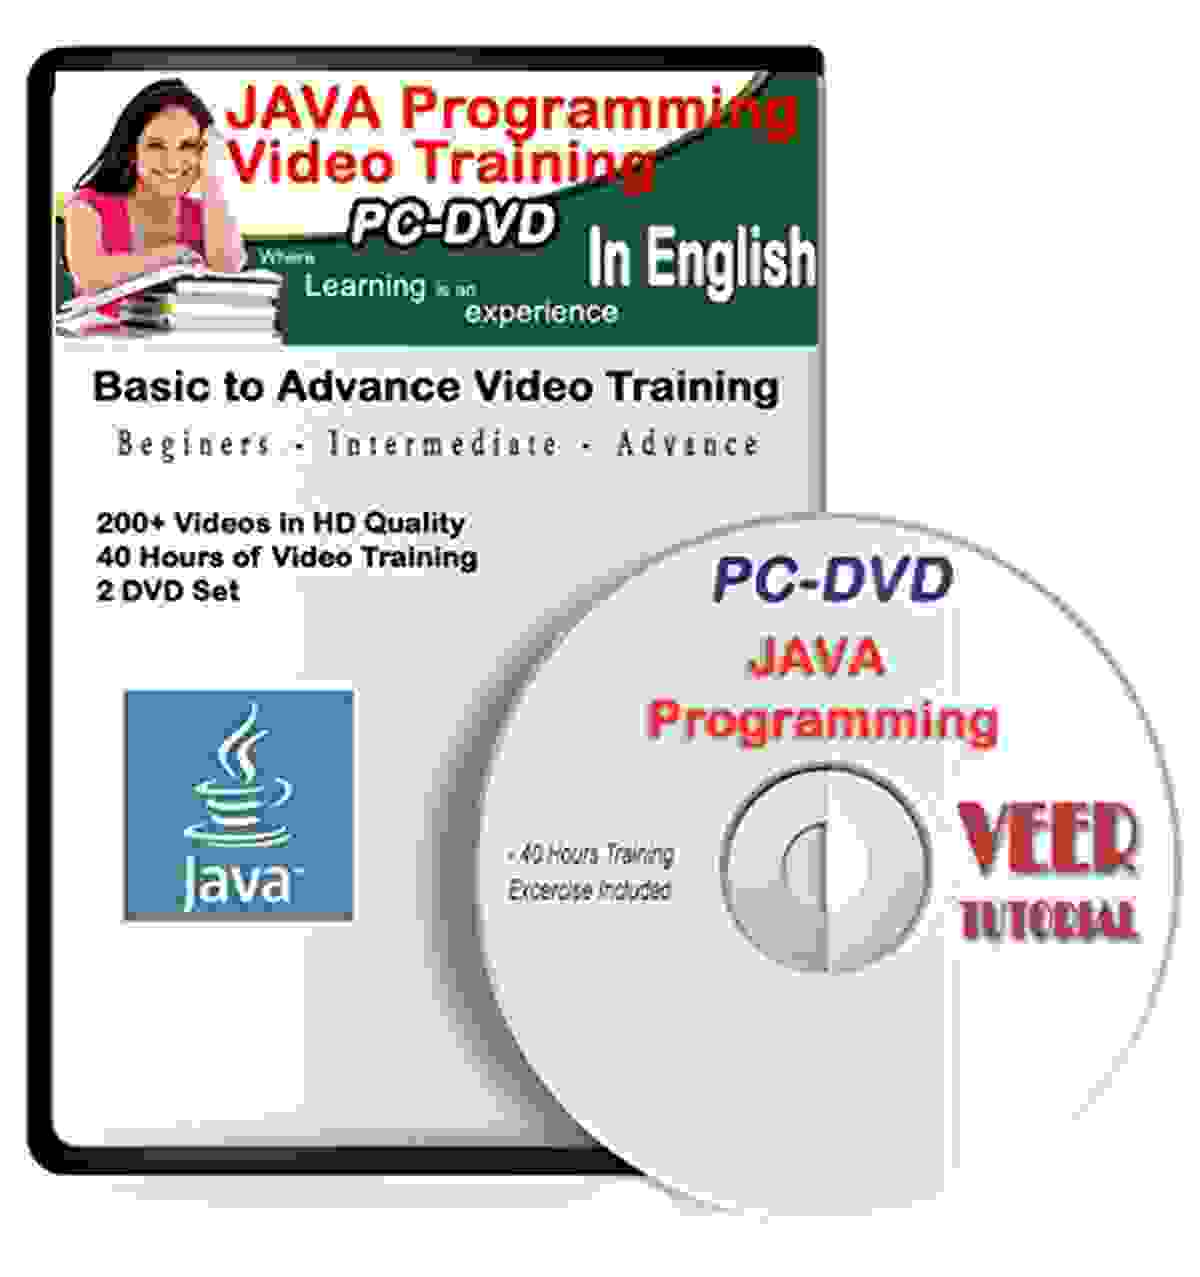 Java Programming Tutorial DVD Basic to Advance Video Training (40 hrs, 200+ Videos) Learning Video